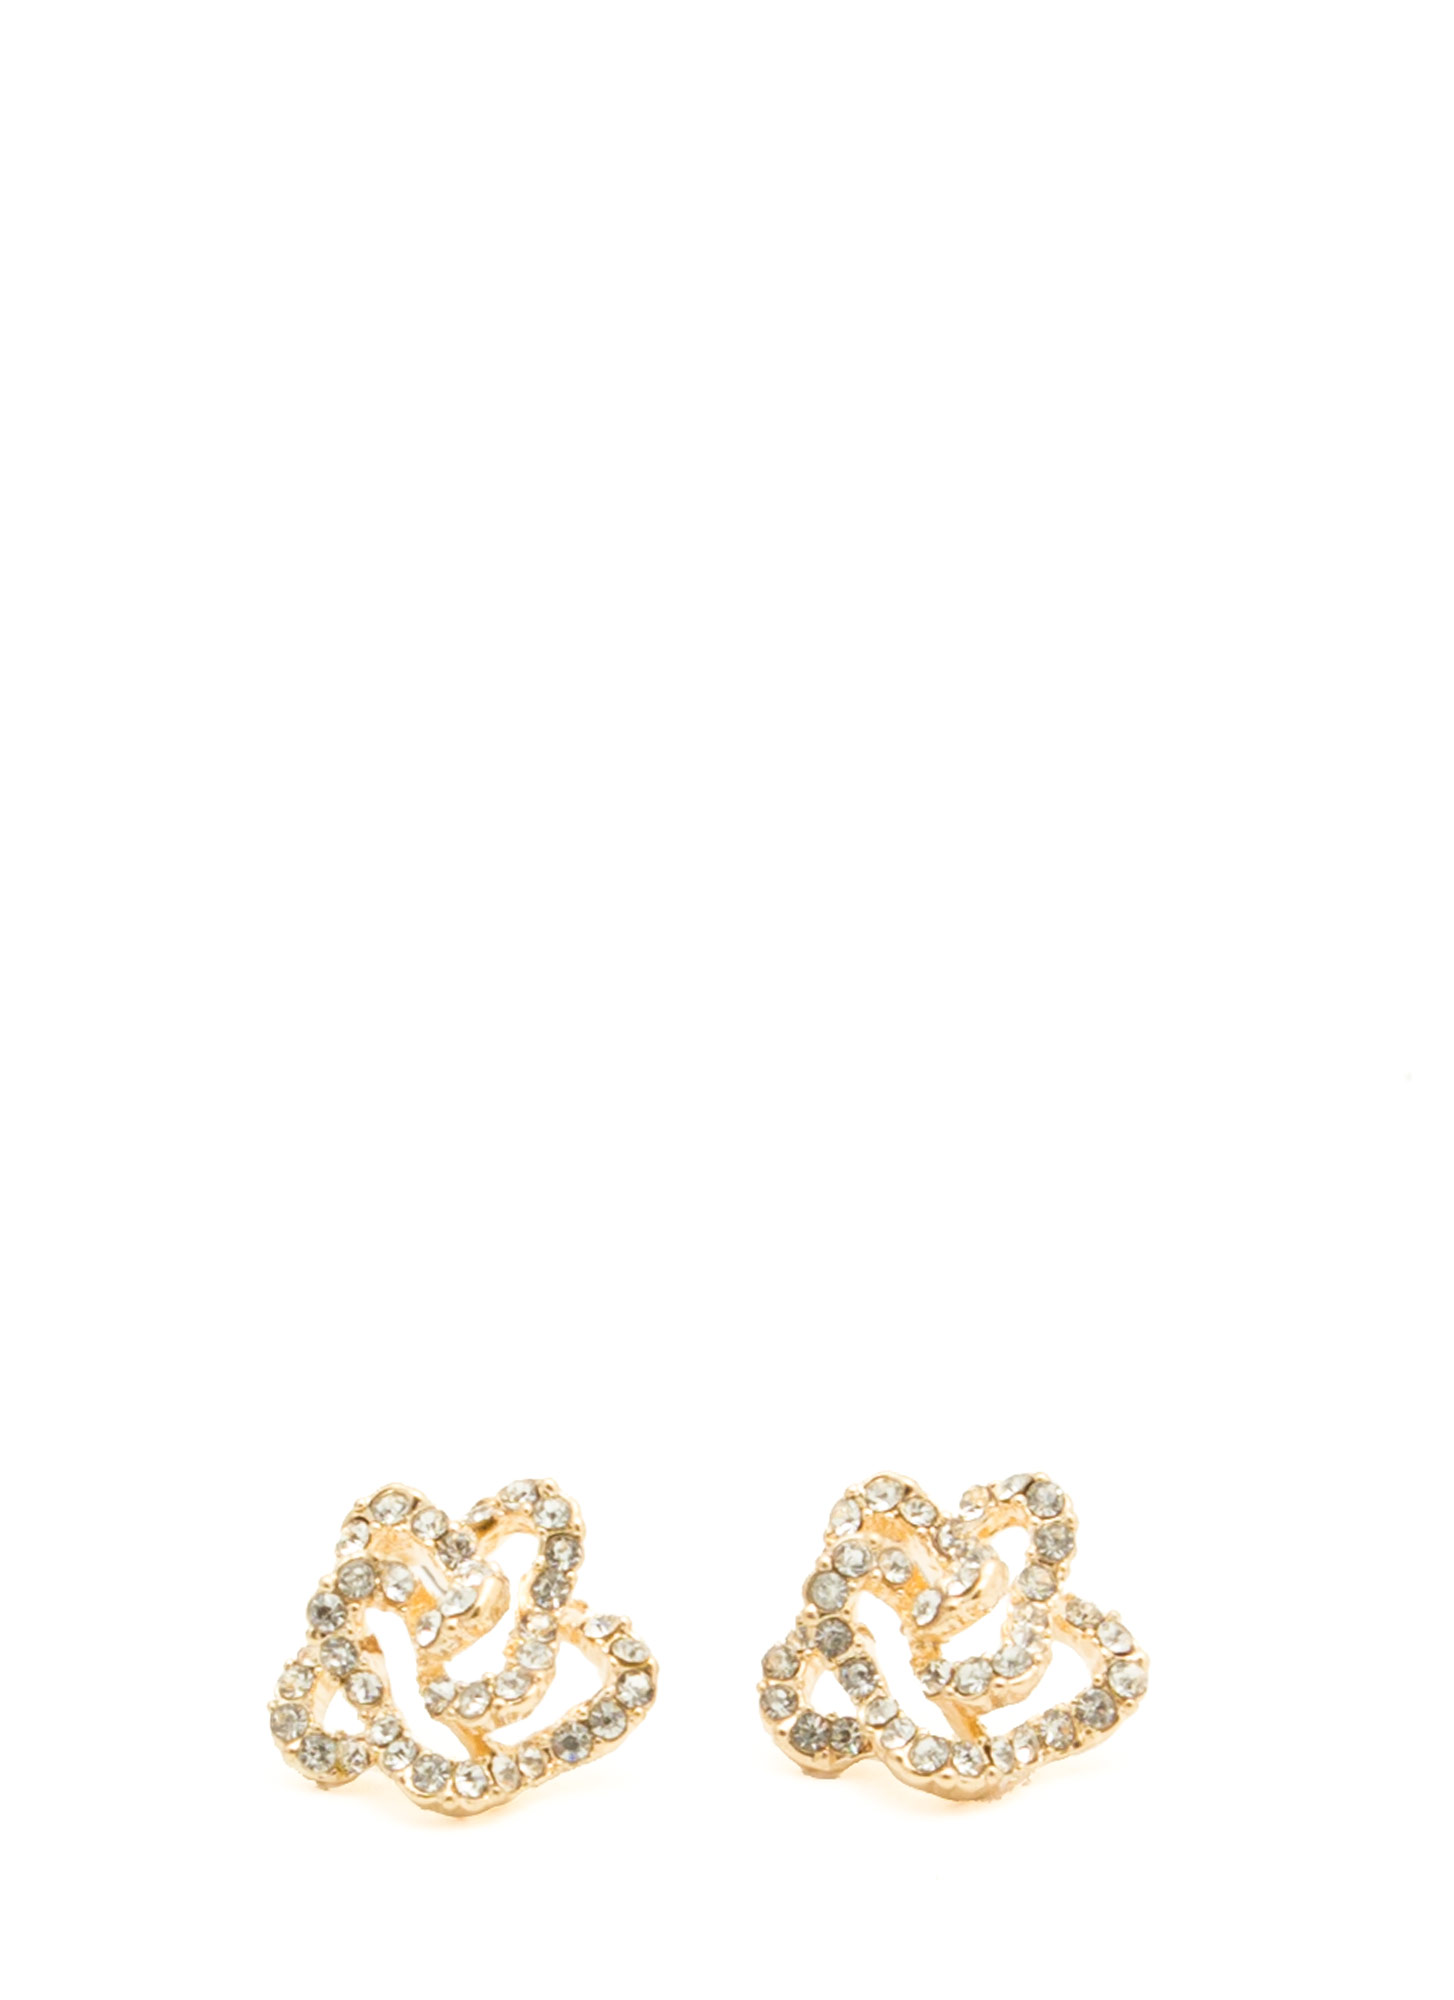 Rhinestone Flower Earrings GOLD